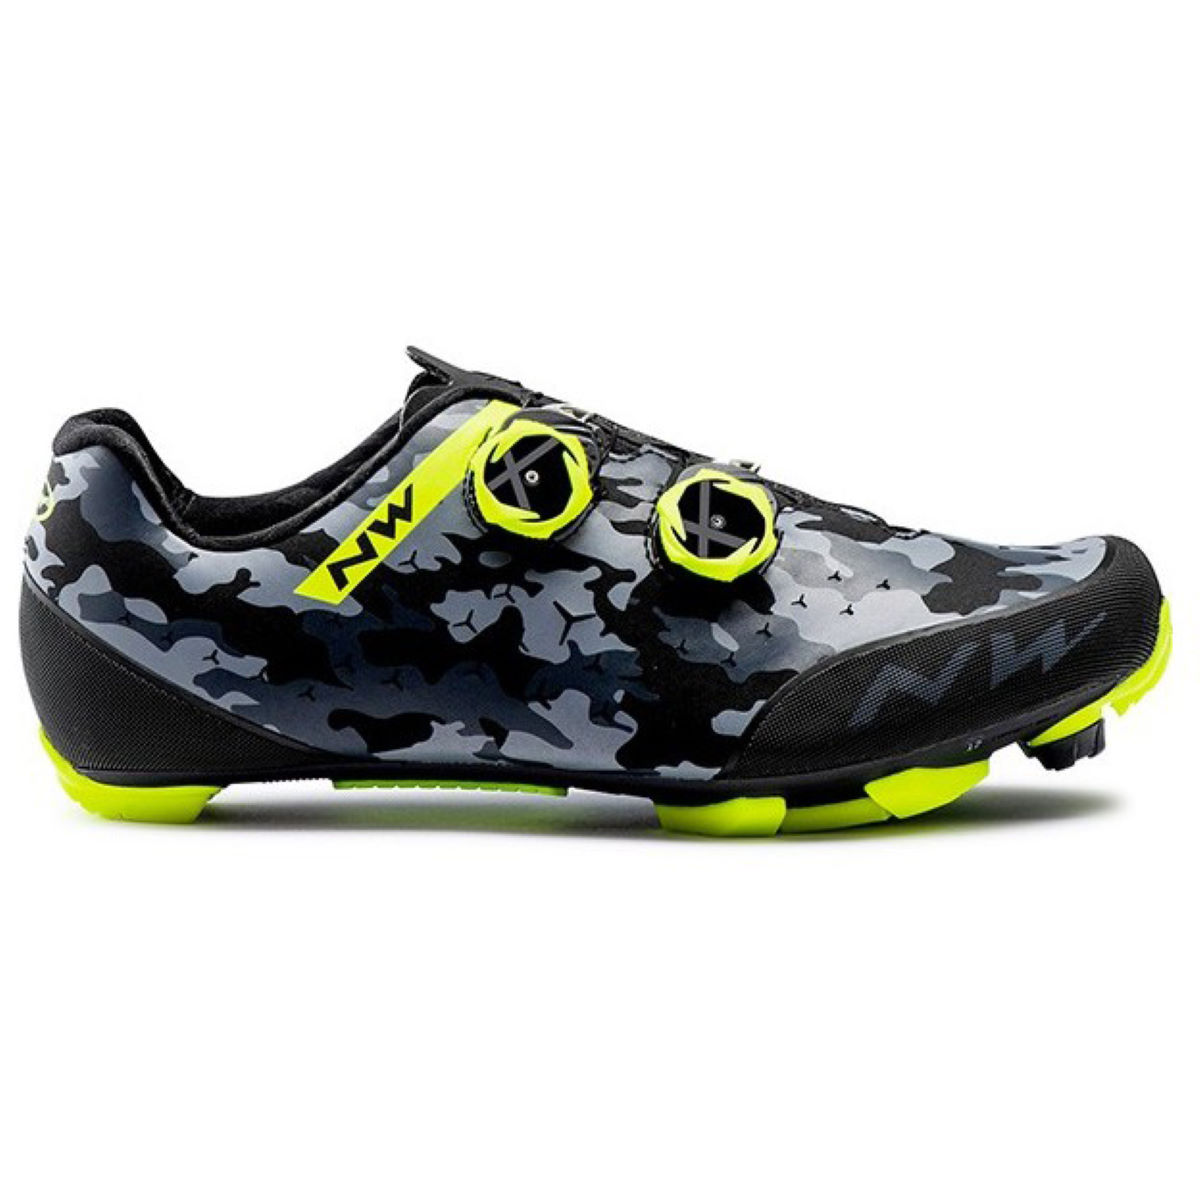 Northwave Rebel Mtb Shoes - 45 Camo Black / Yellow   Cycling Shoes